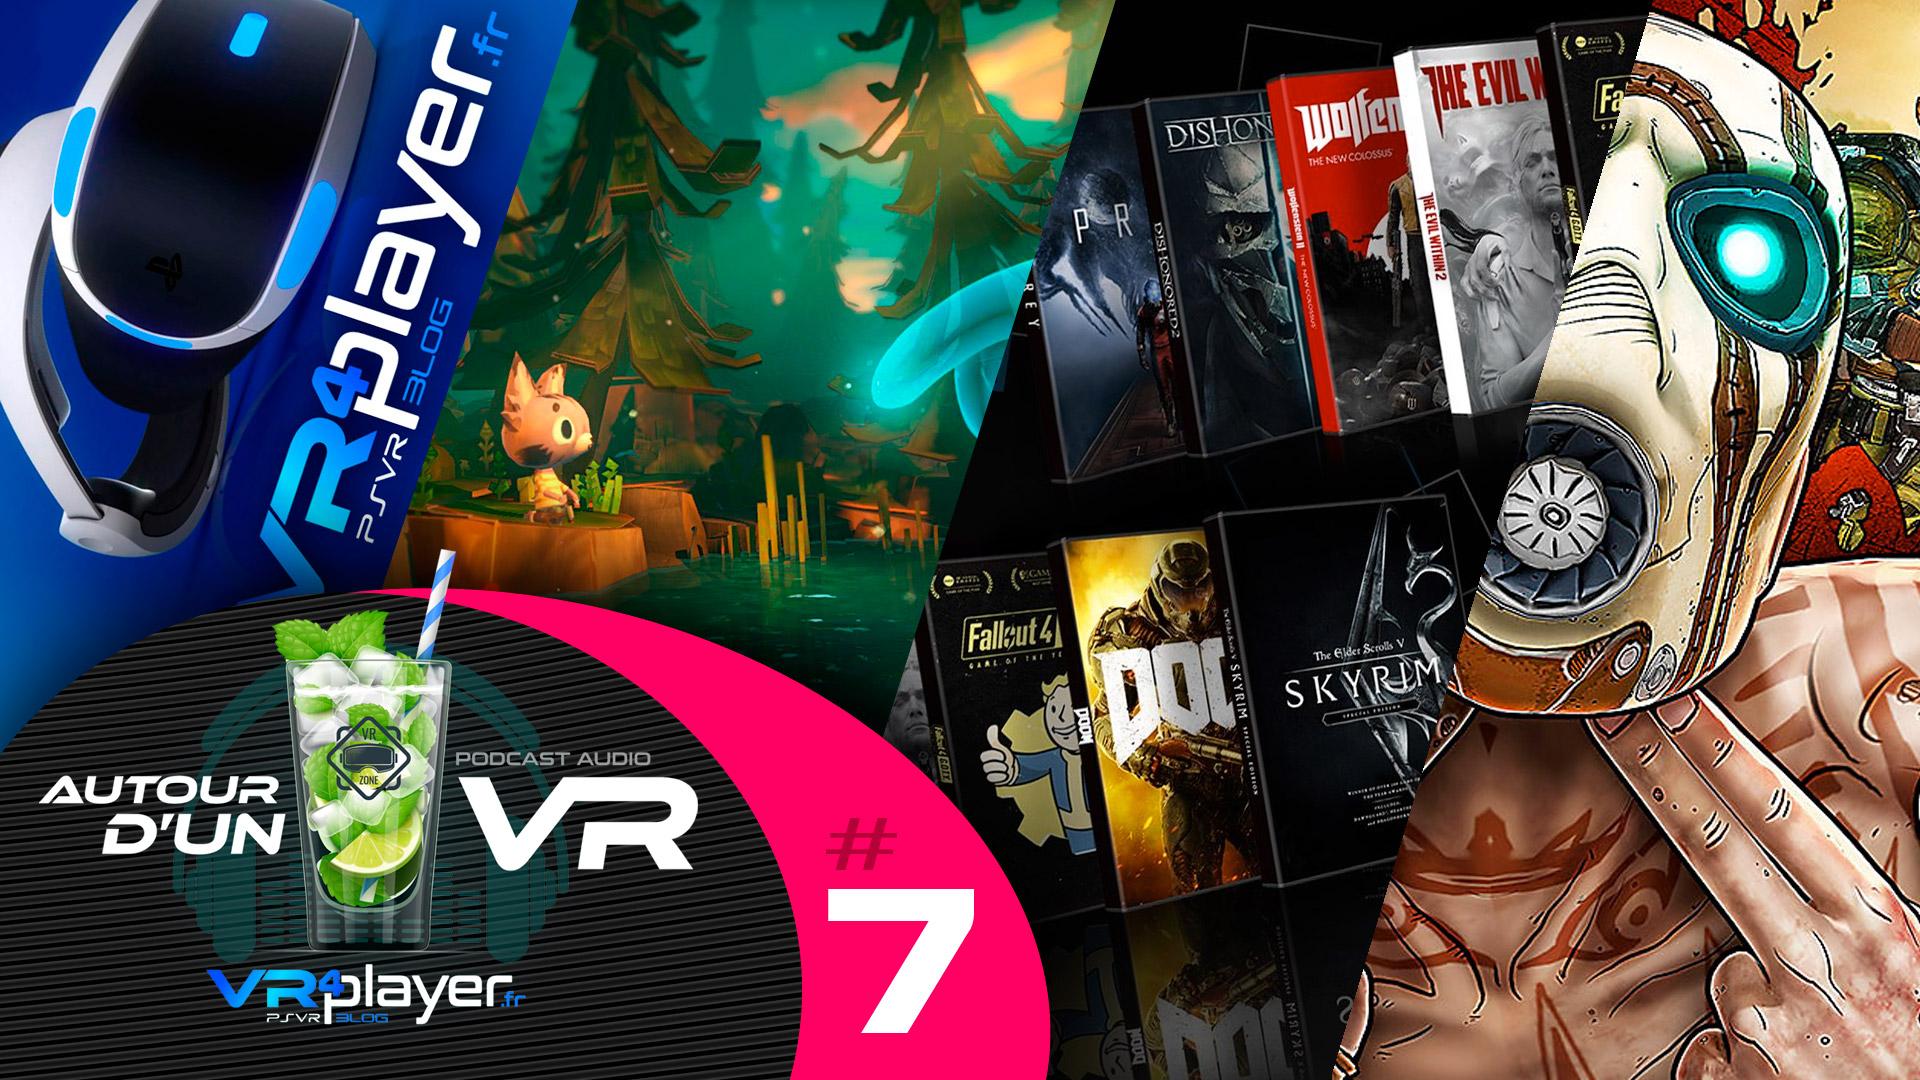 Podcast Autour d'un VR VR4Player